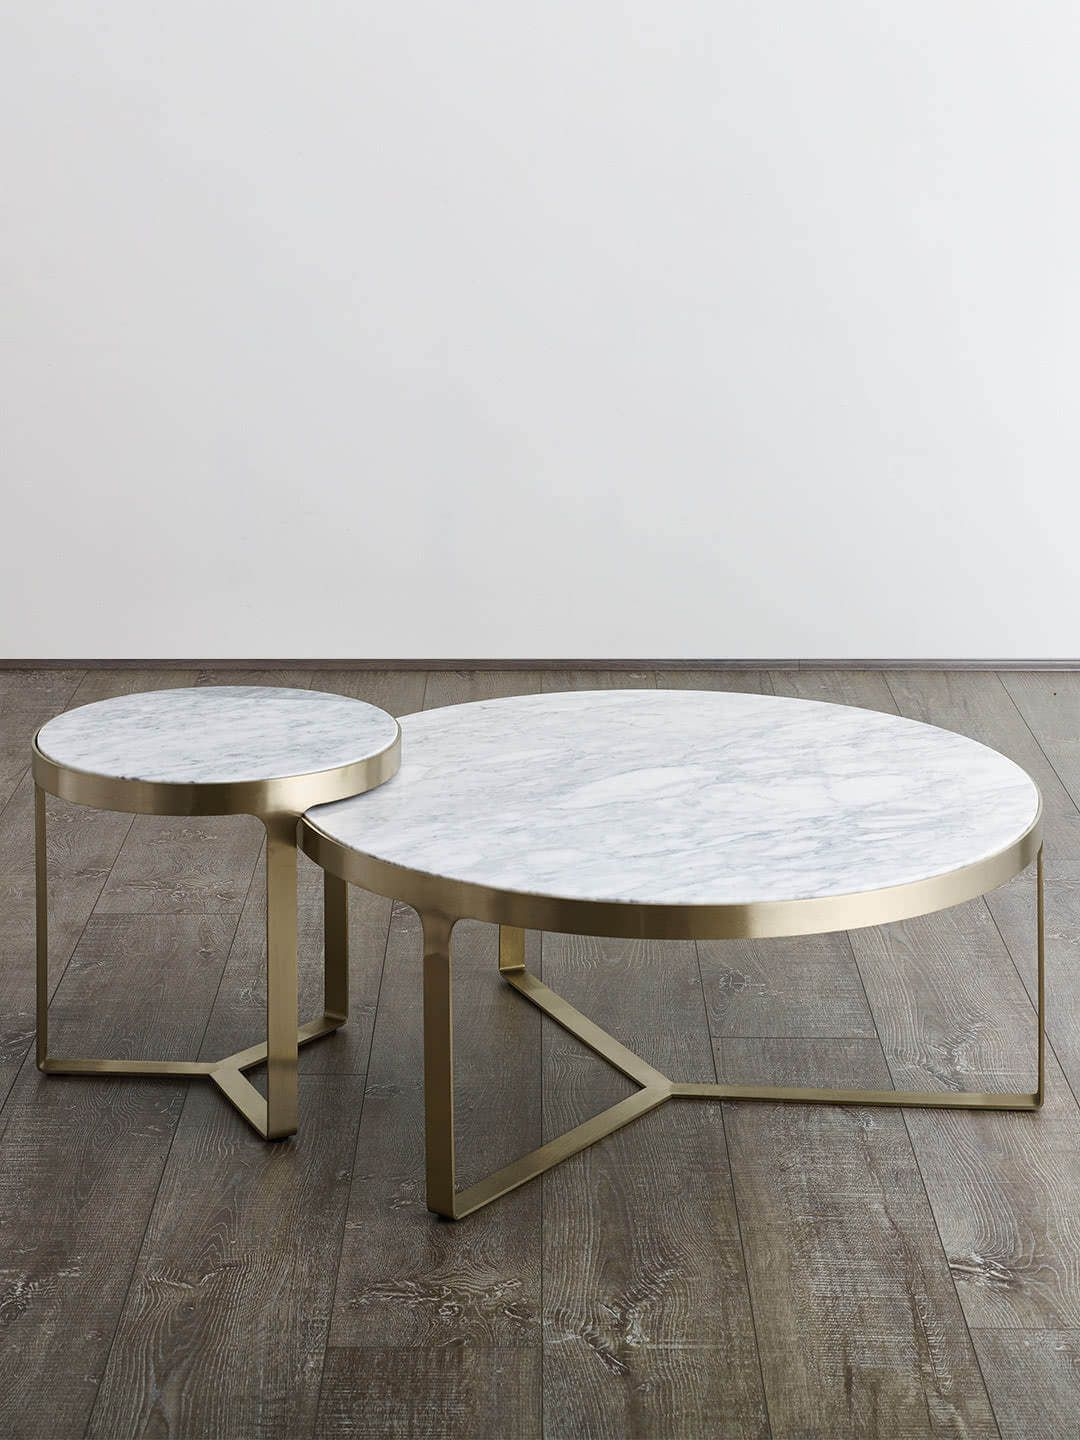 Julius Marble Tables The Rug Collection Marble Coffee Table Living Room Marble Tables Living Room Living Room Coffee Table #round #center #table #for #living #room